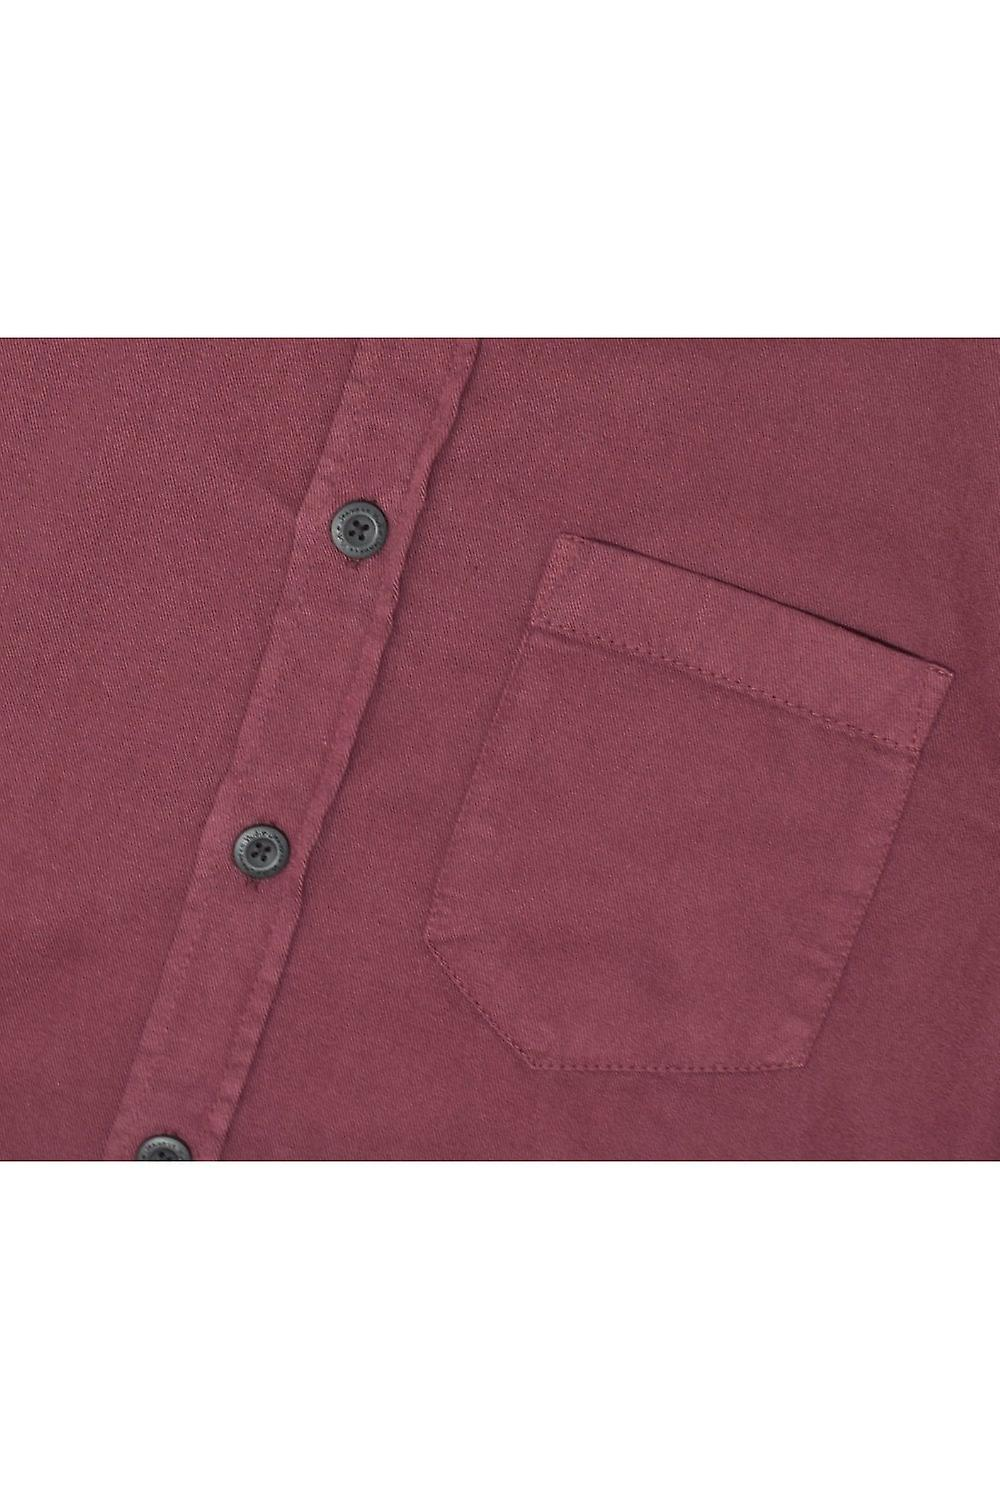 Nudie Jeans Co Henry Pigment Dyed Long-Shirted Shirt (Fig)